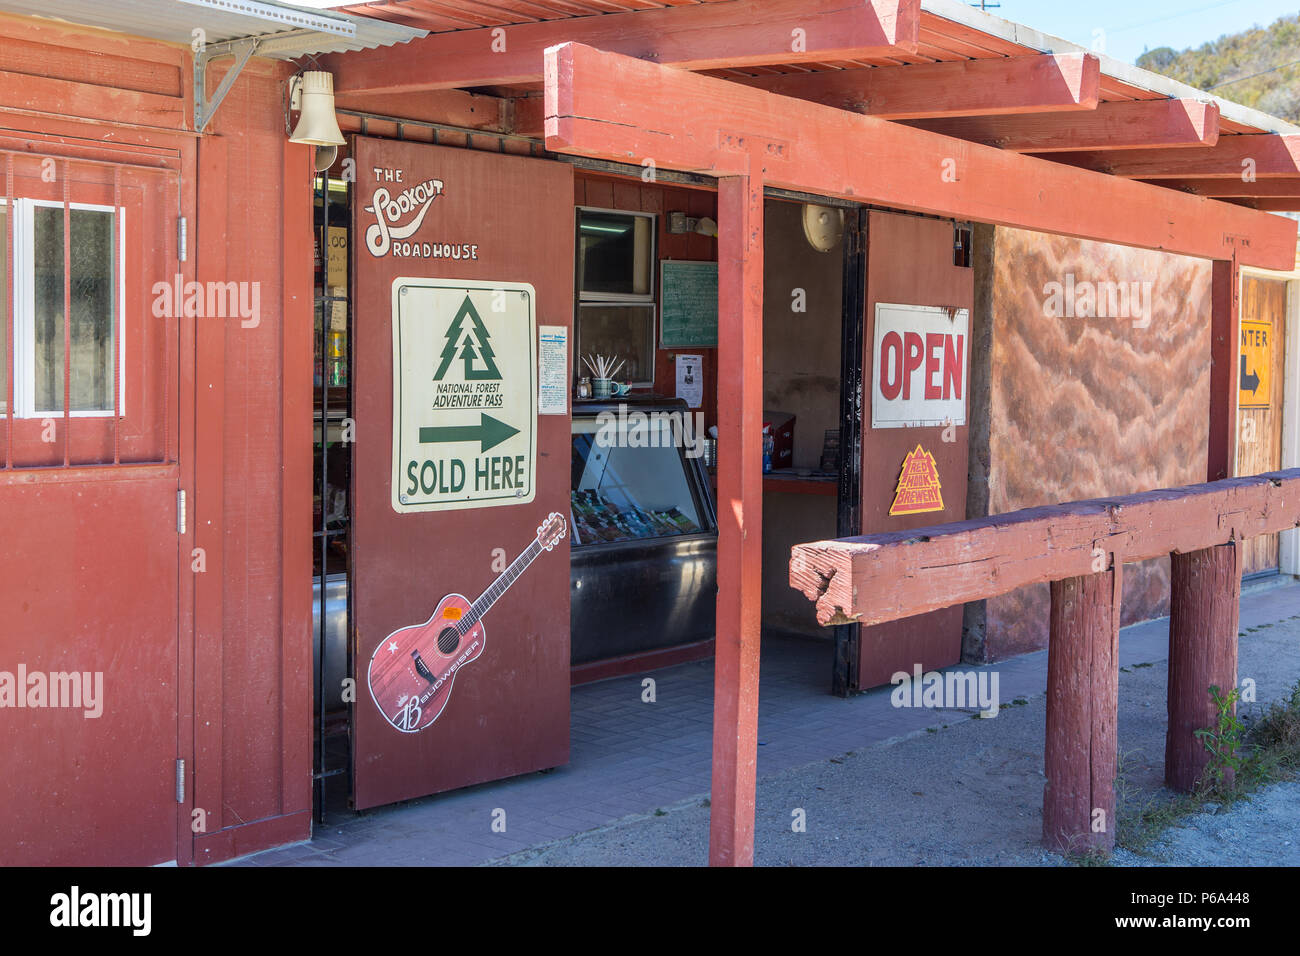 Lookout Roadhouse  on Ortega Hwy displaying the national forest adventure pass for sale  sign. Lake Elsinore California USA - Stock Image